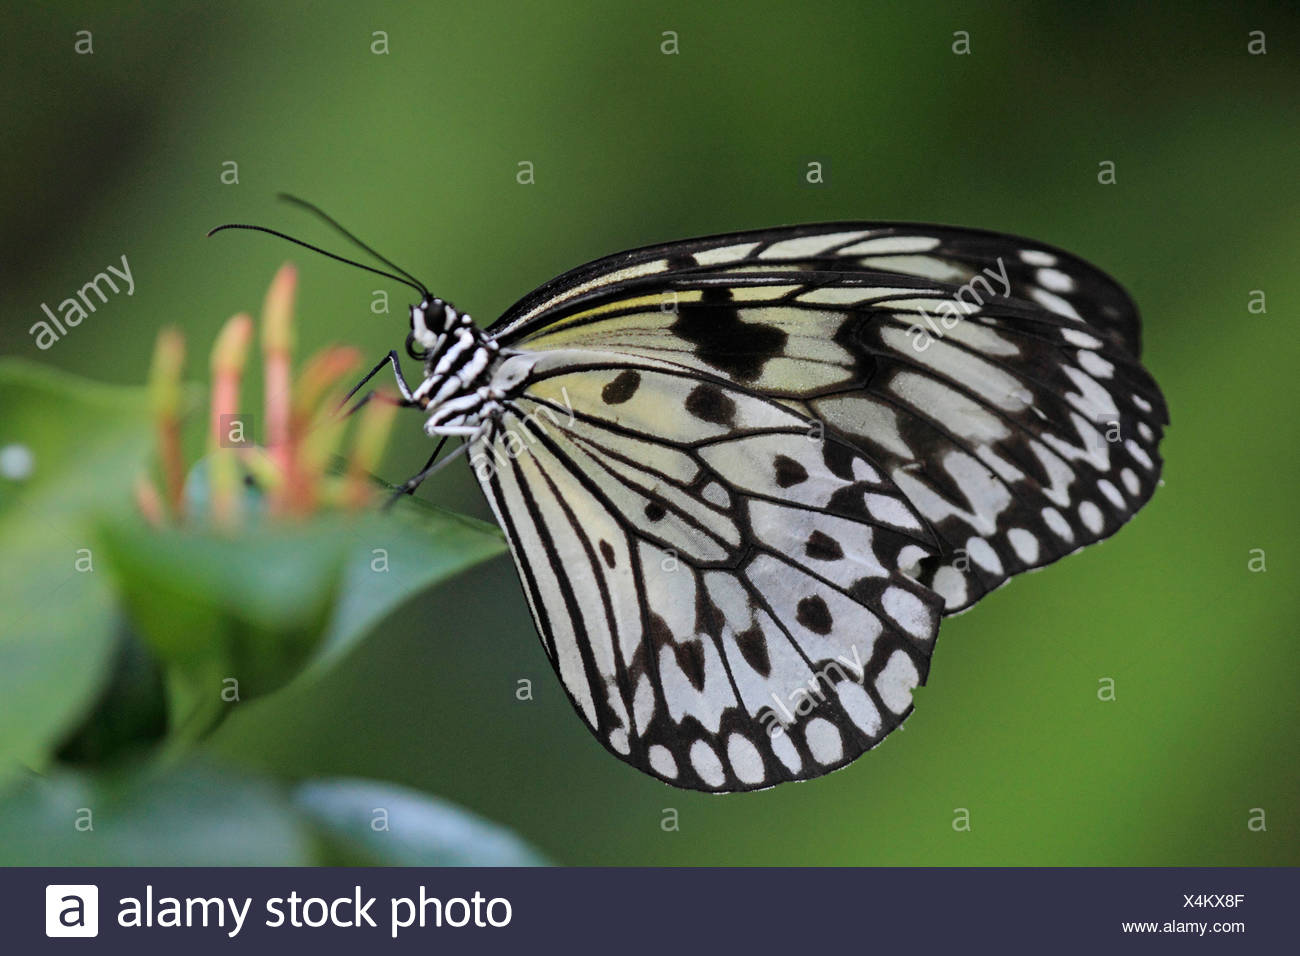 tree nymph (Idea leuconoe), sitting at a plant - Stock Image